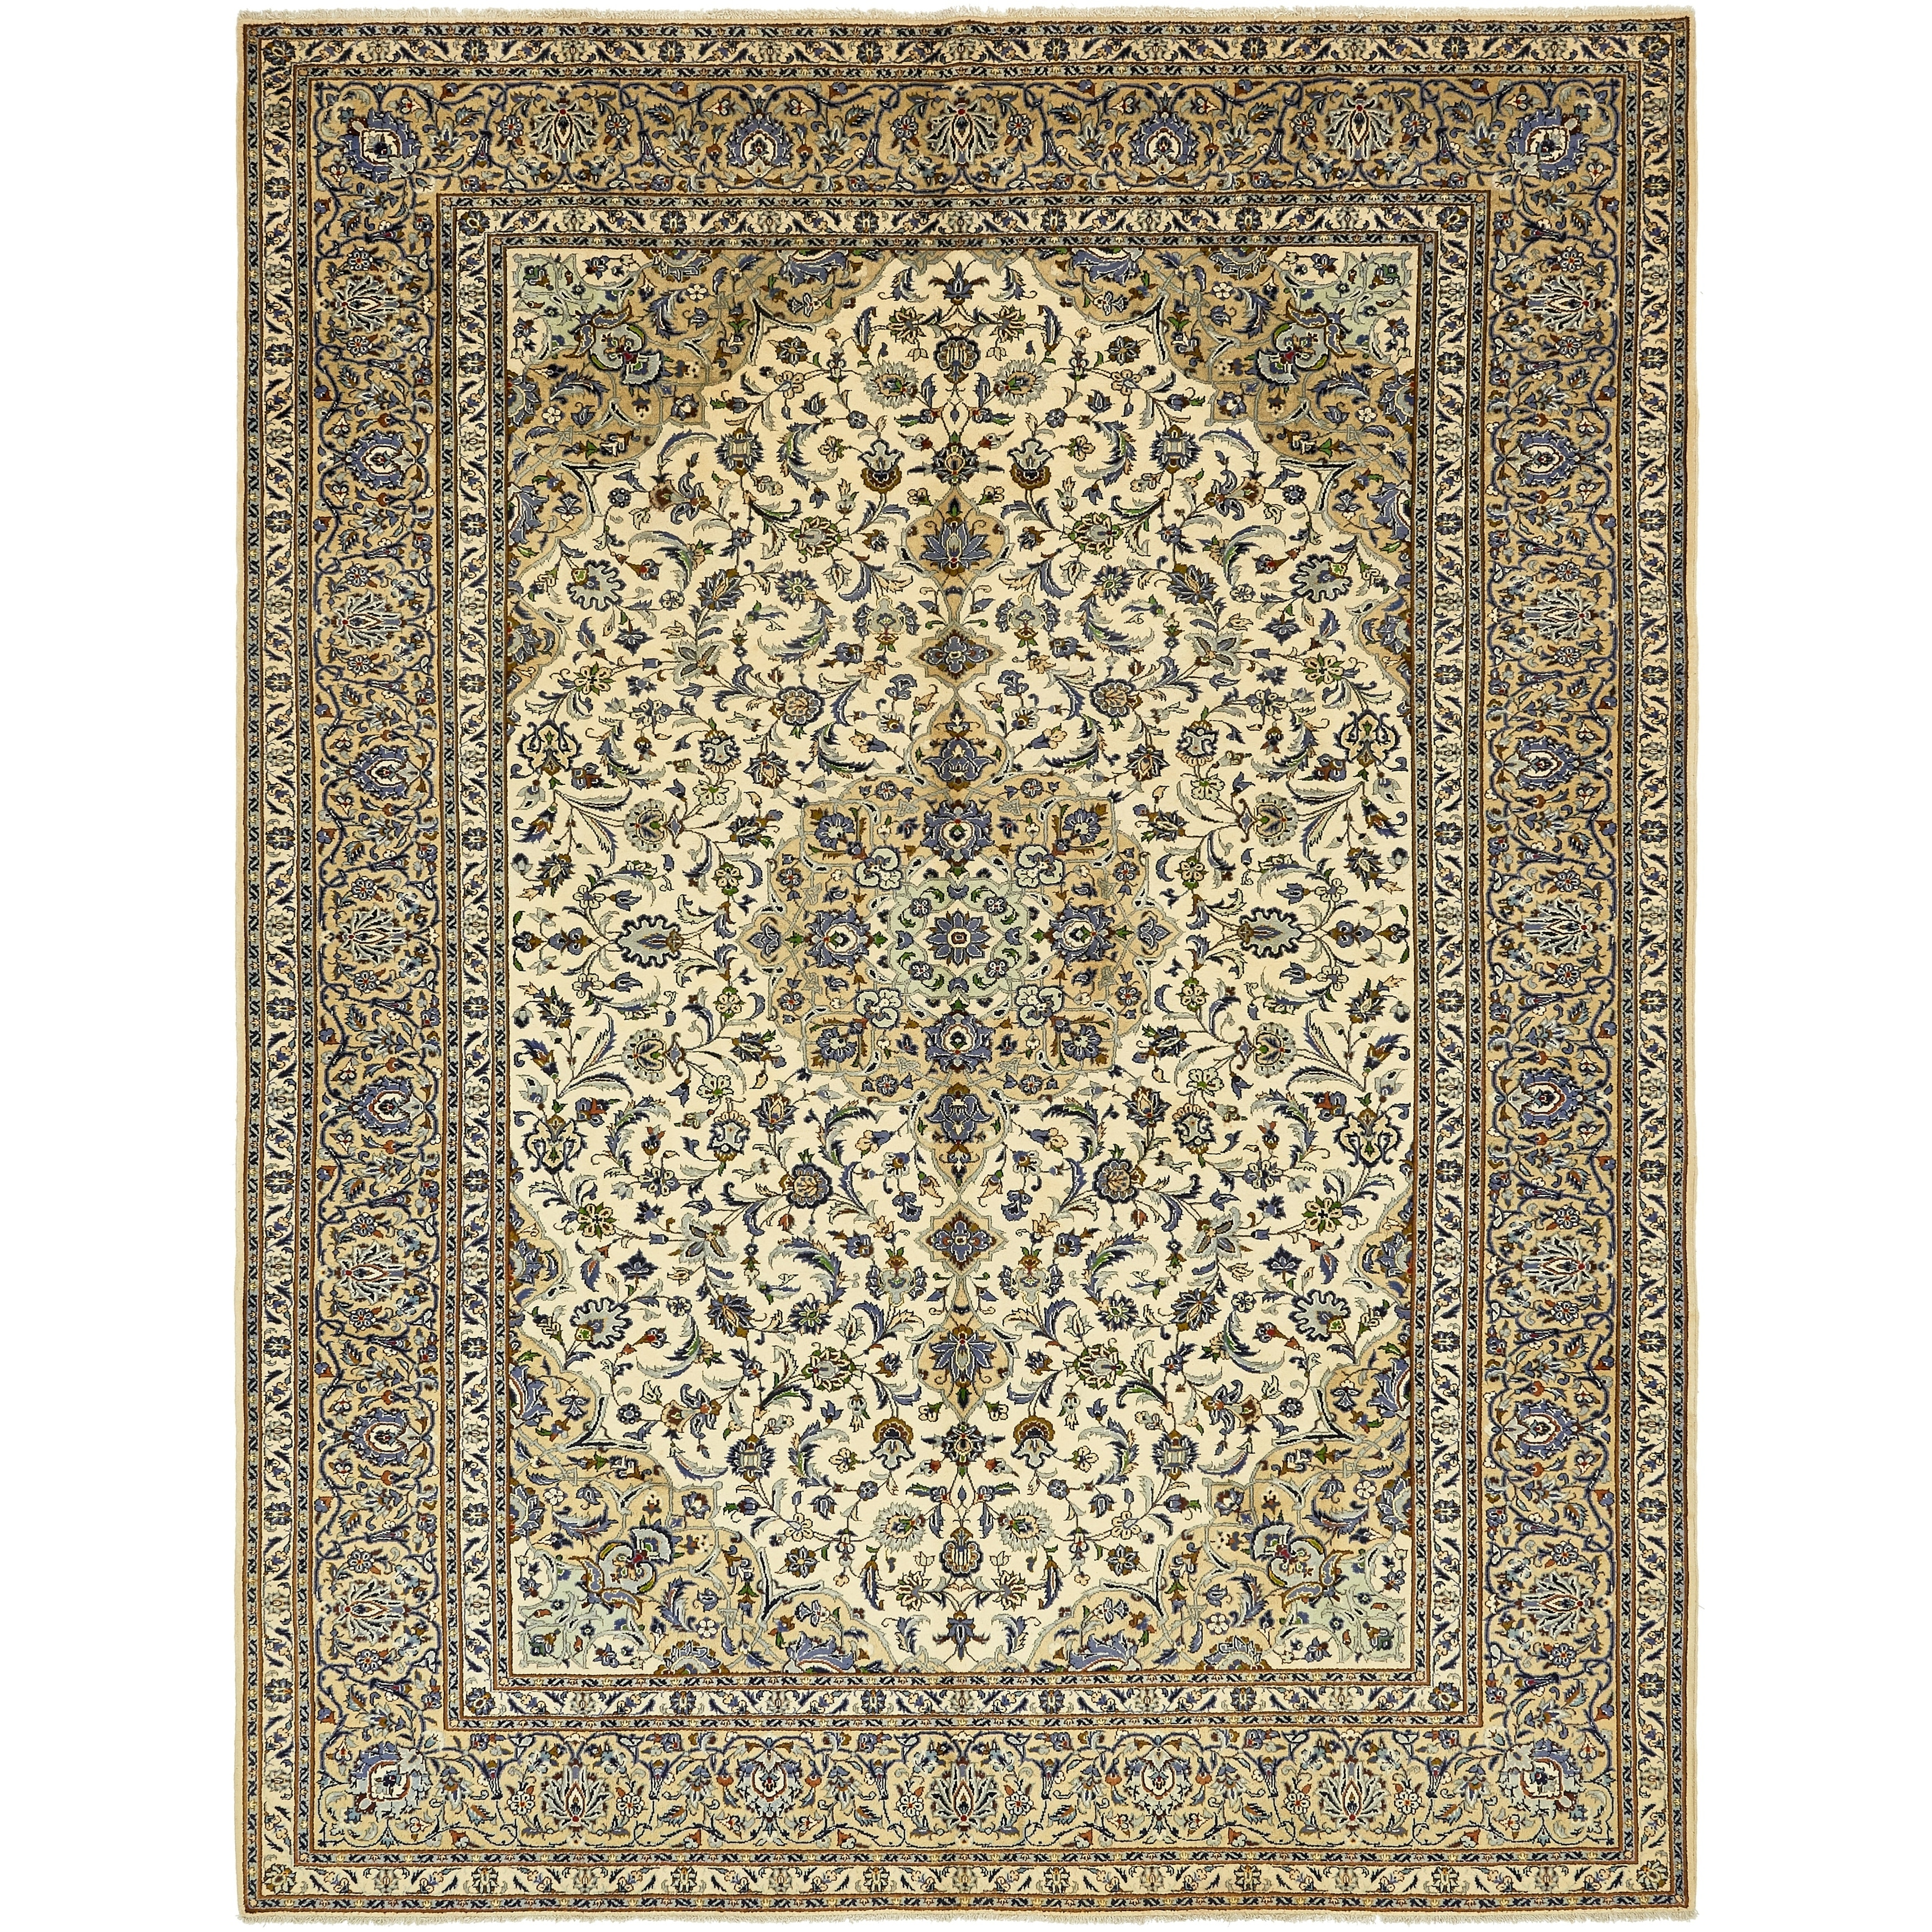 Hand Knotted Kashan Semi Antique Wool Area Rug - 9 9 x 12 10 (Ivory - 9 9 x 12 10)